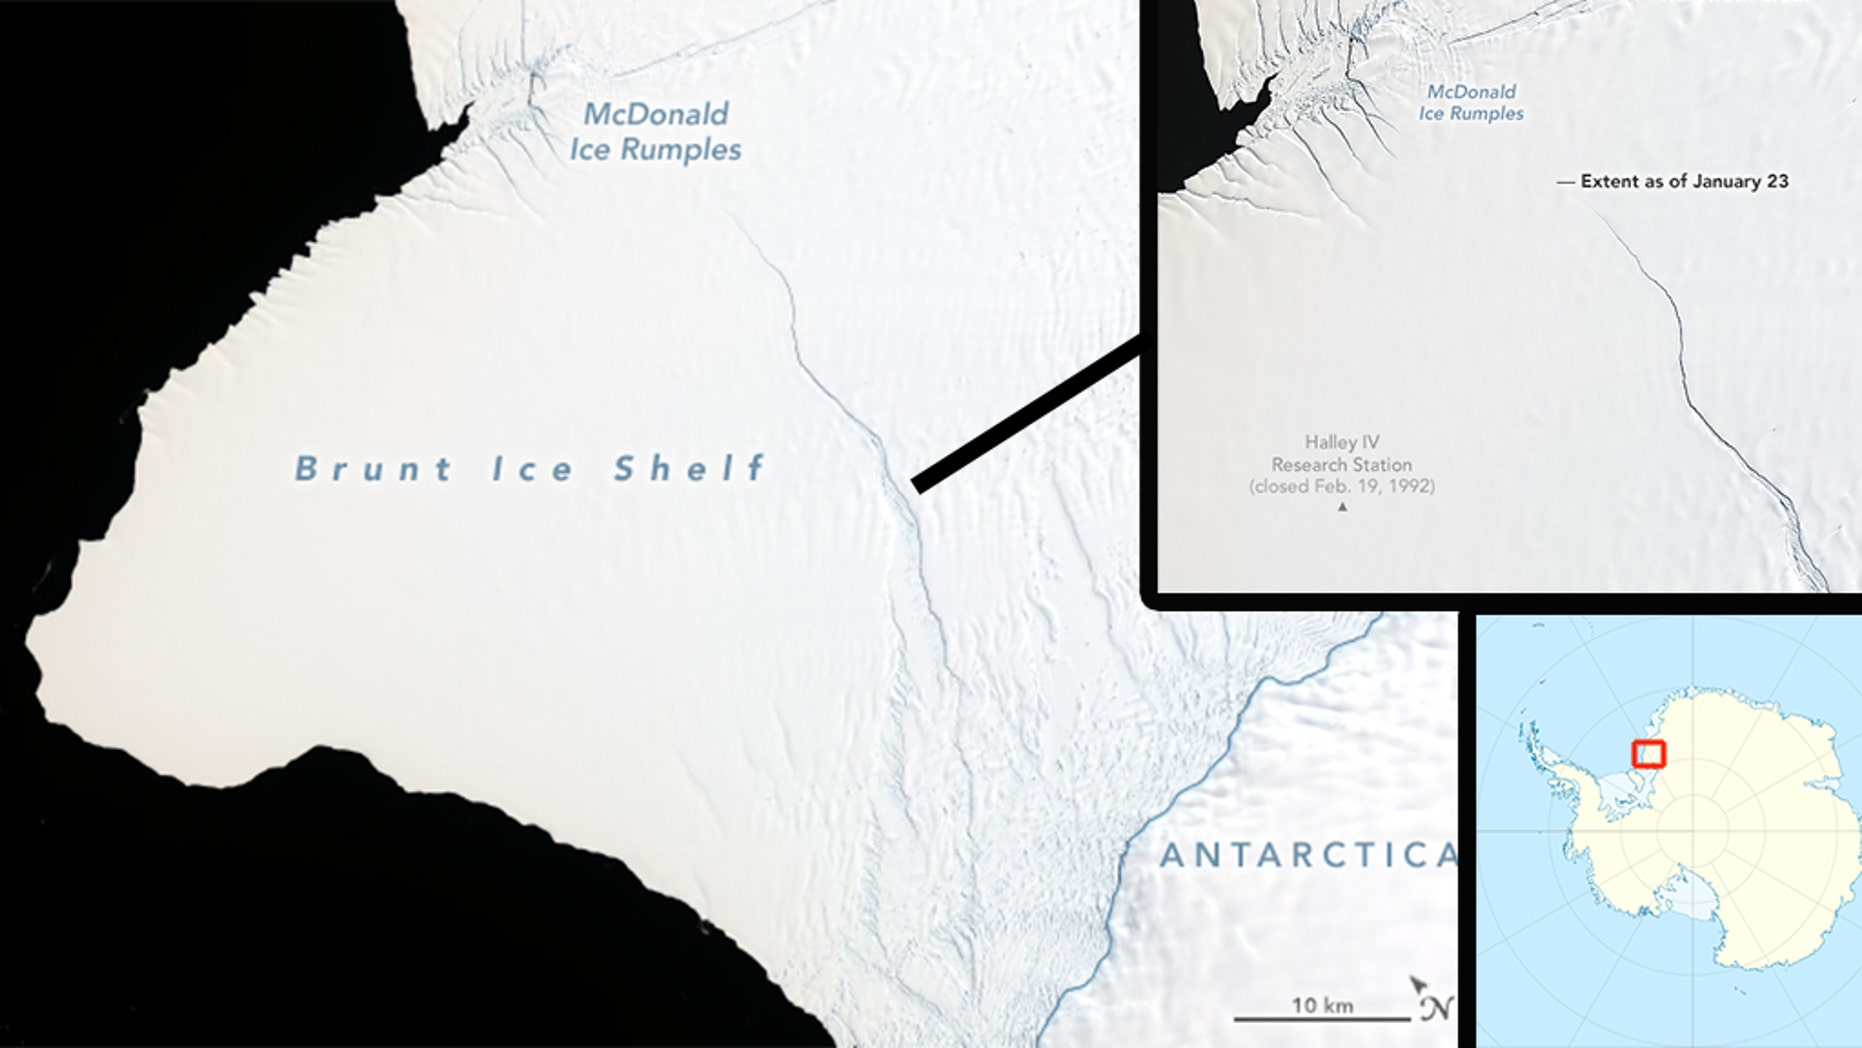 NASA scientists watch Bant's ice shelf in Antarctica, where icebergs are about twice as big as New York.